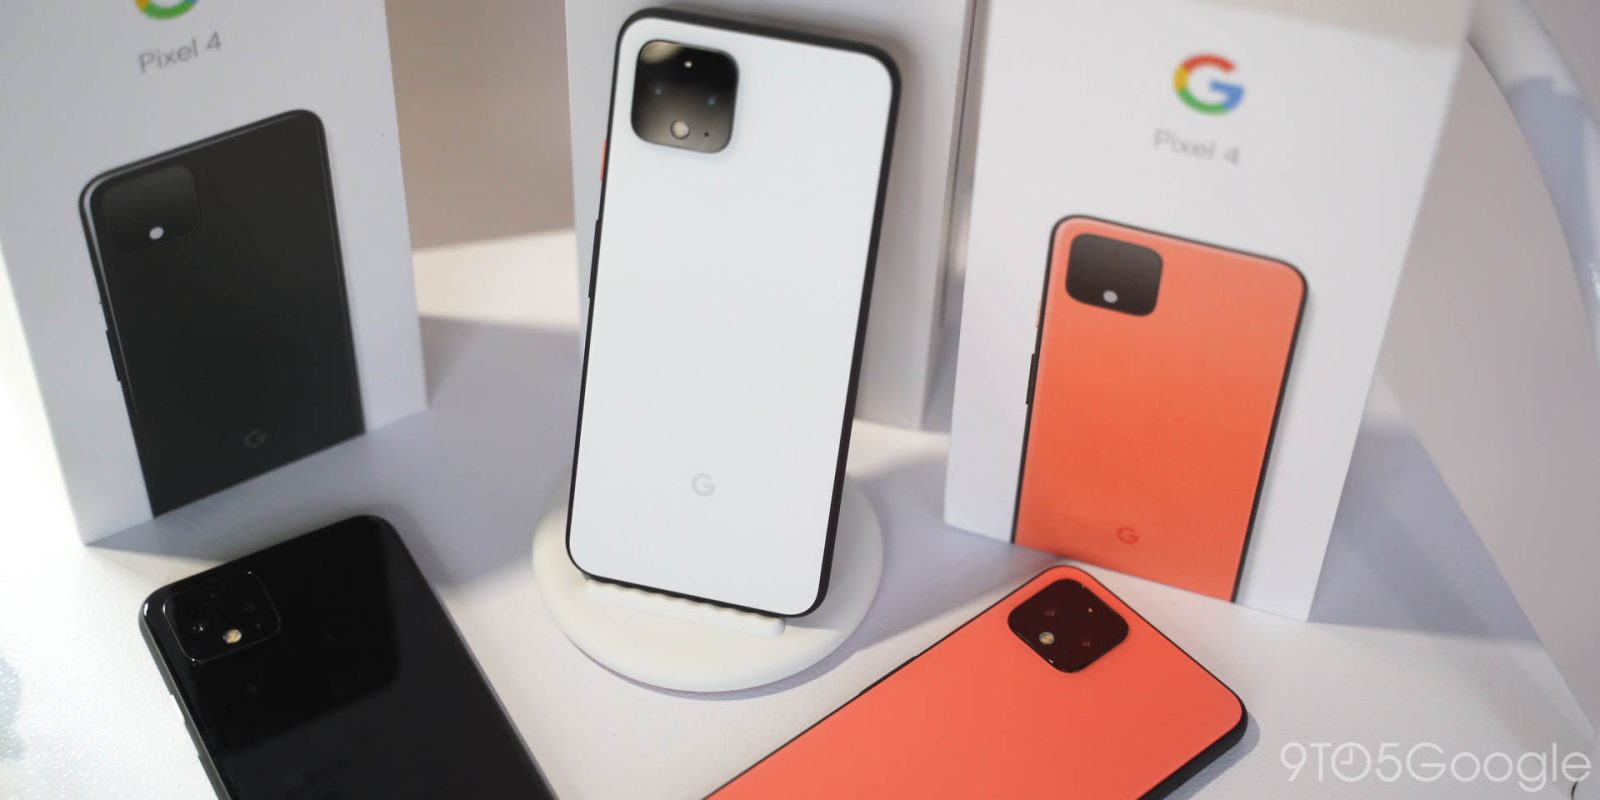 Pointing Google Lens at the Pixel 4 box uncovers an Easter Egg